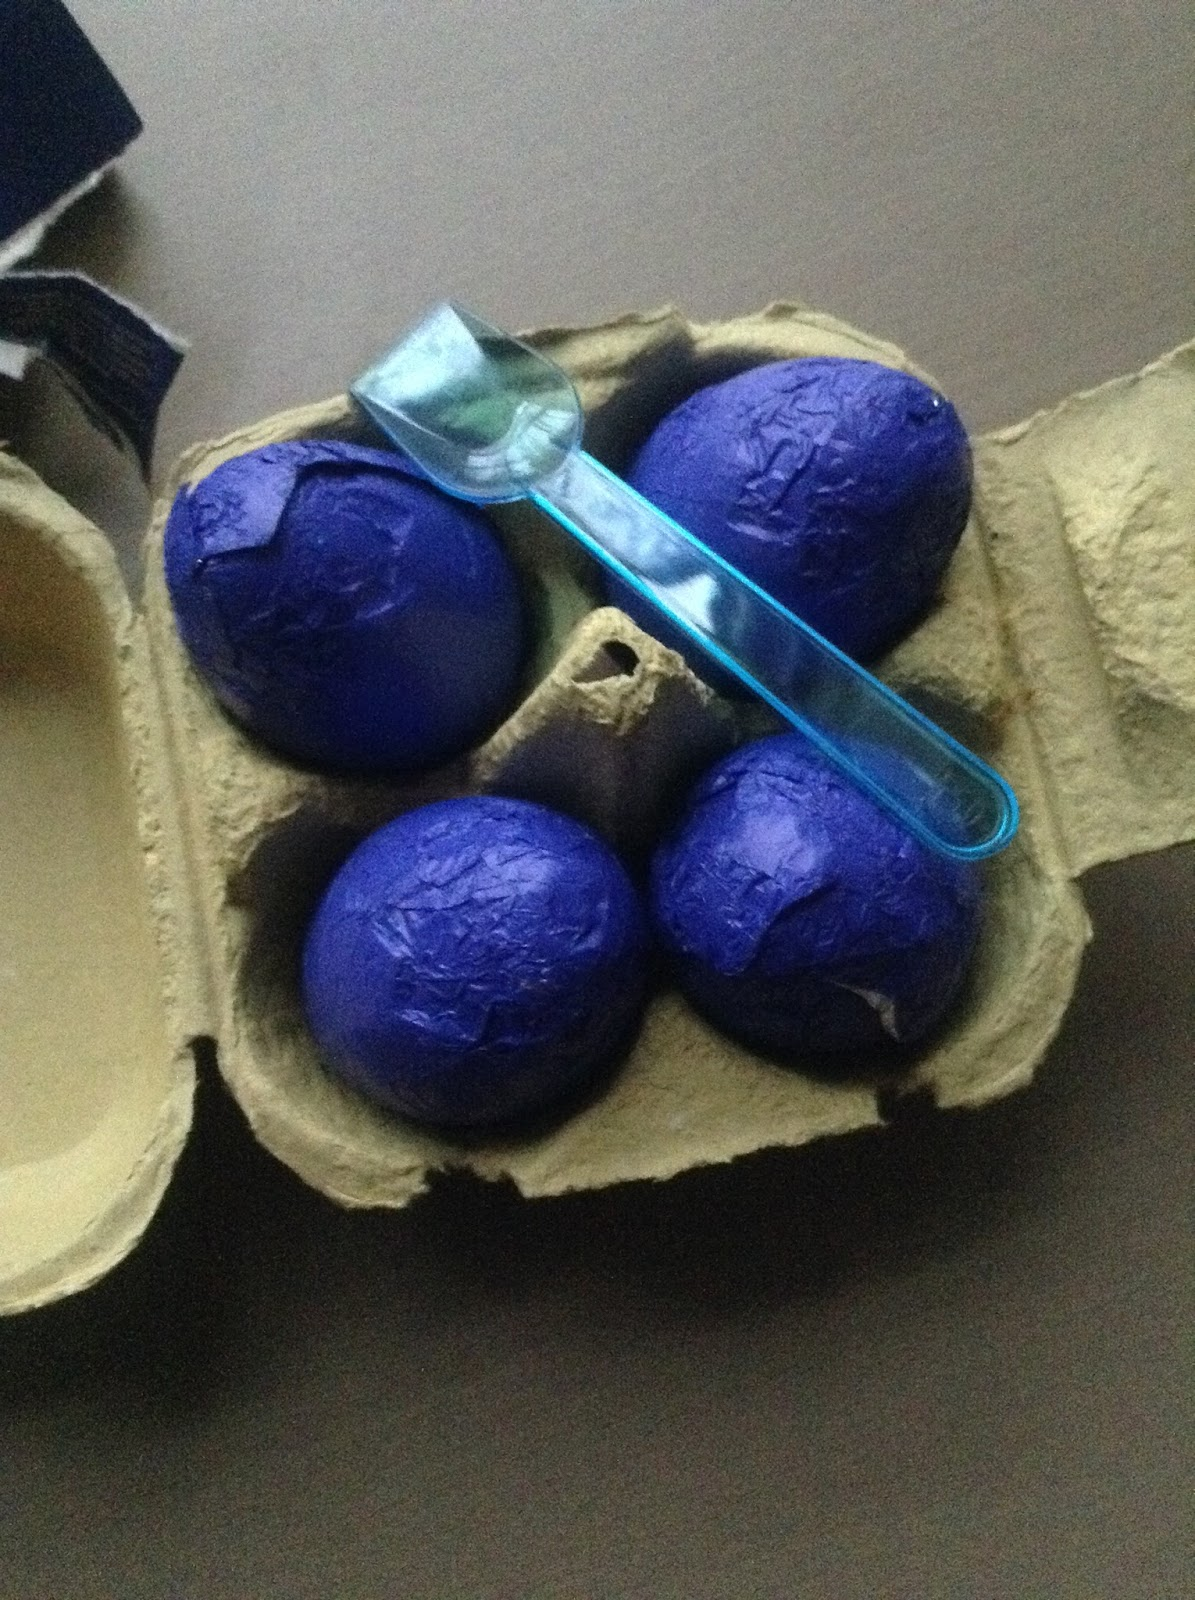 Spoon it out easter eggs poundland spoon it out easter eggs negle Choice Image